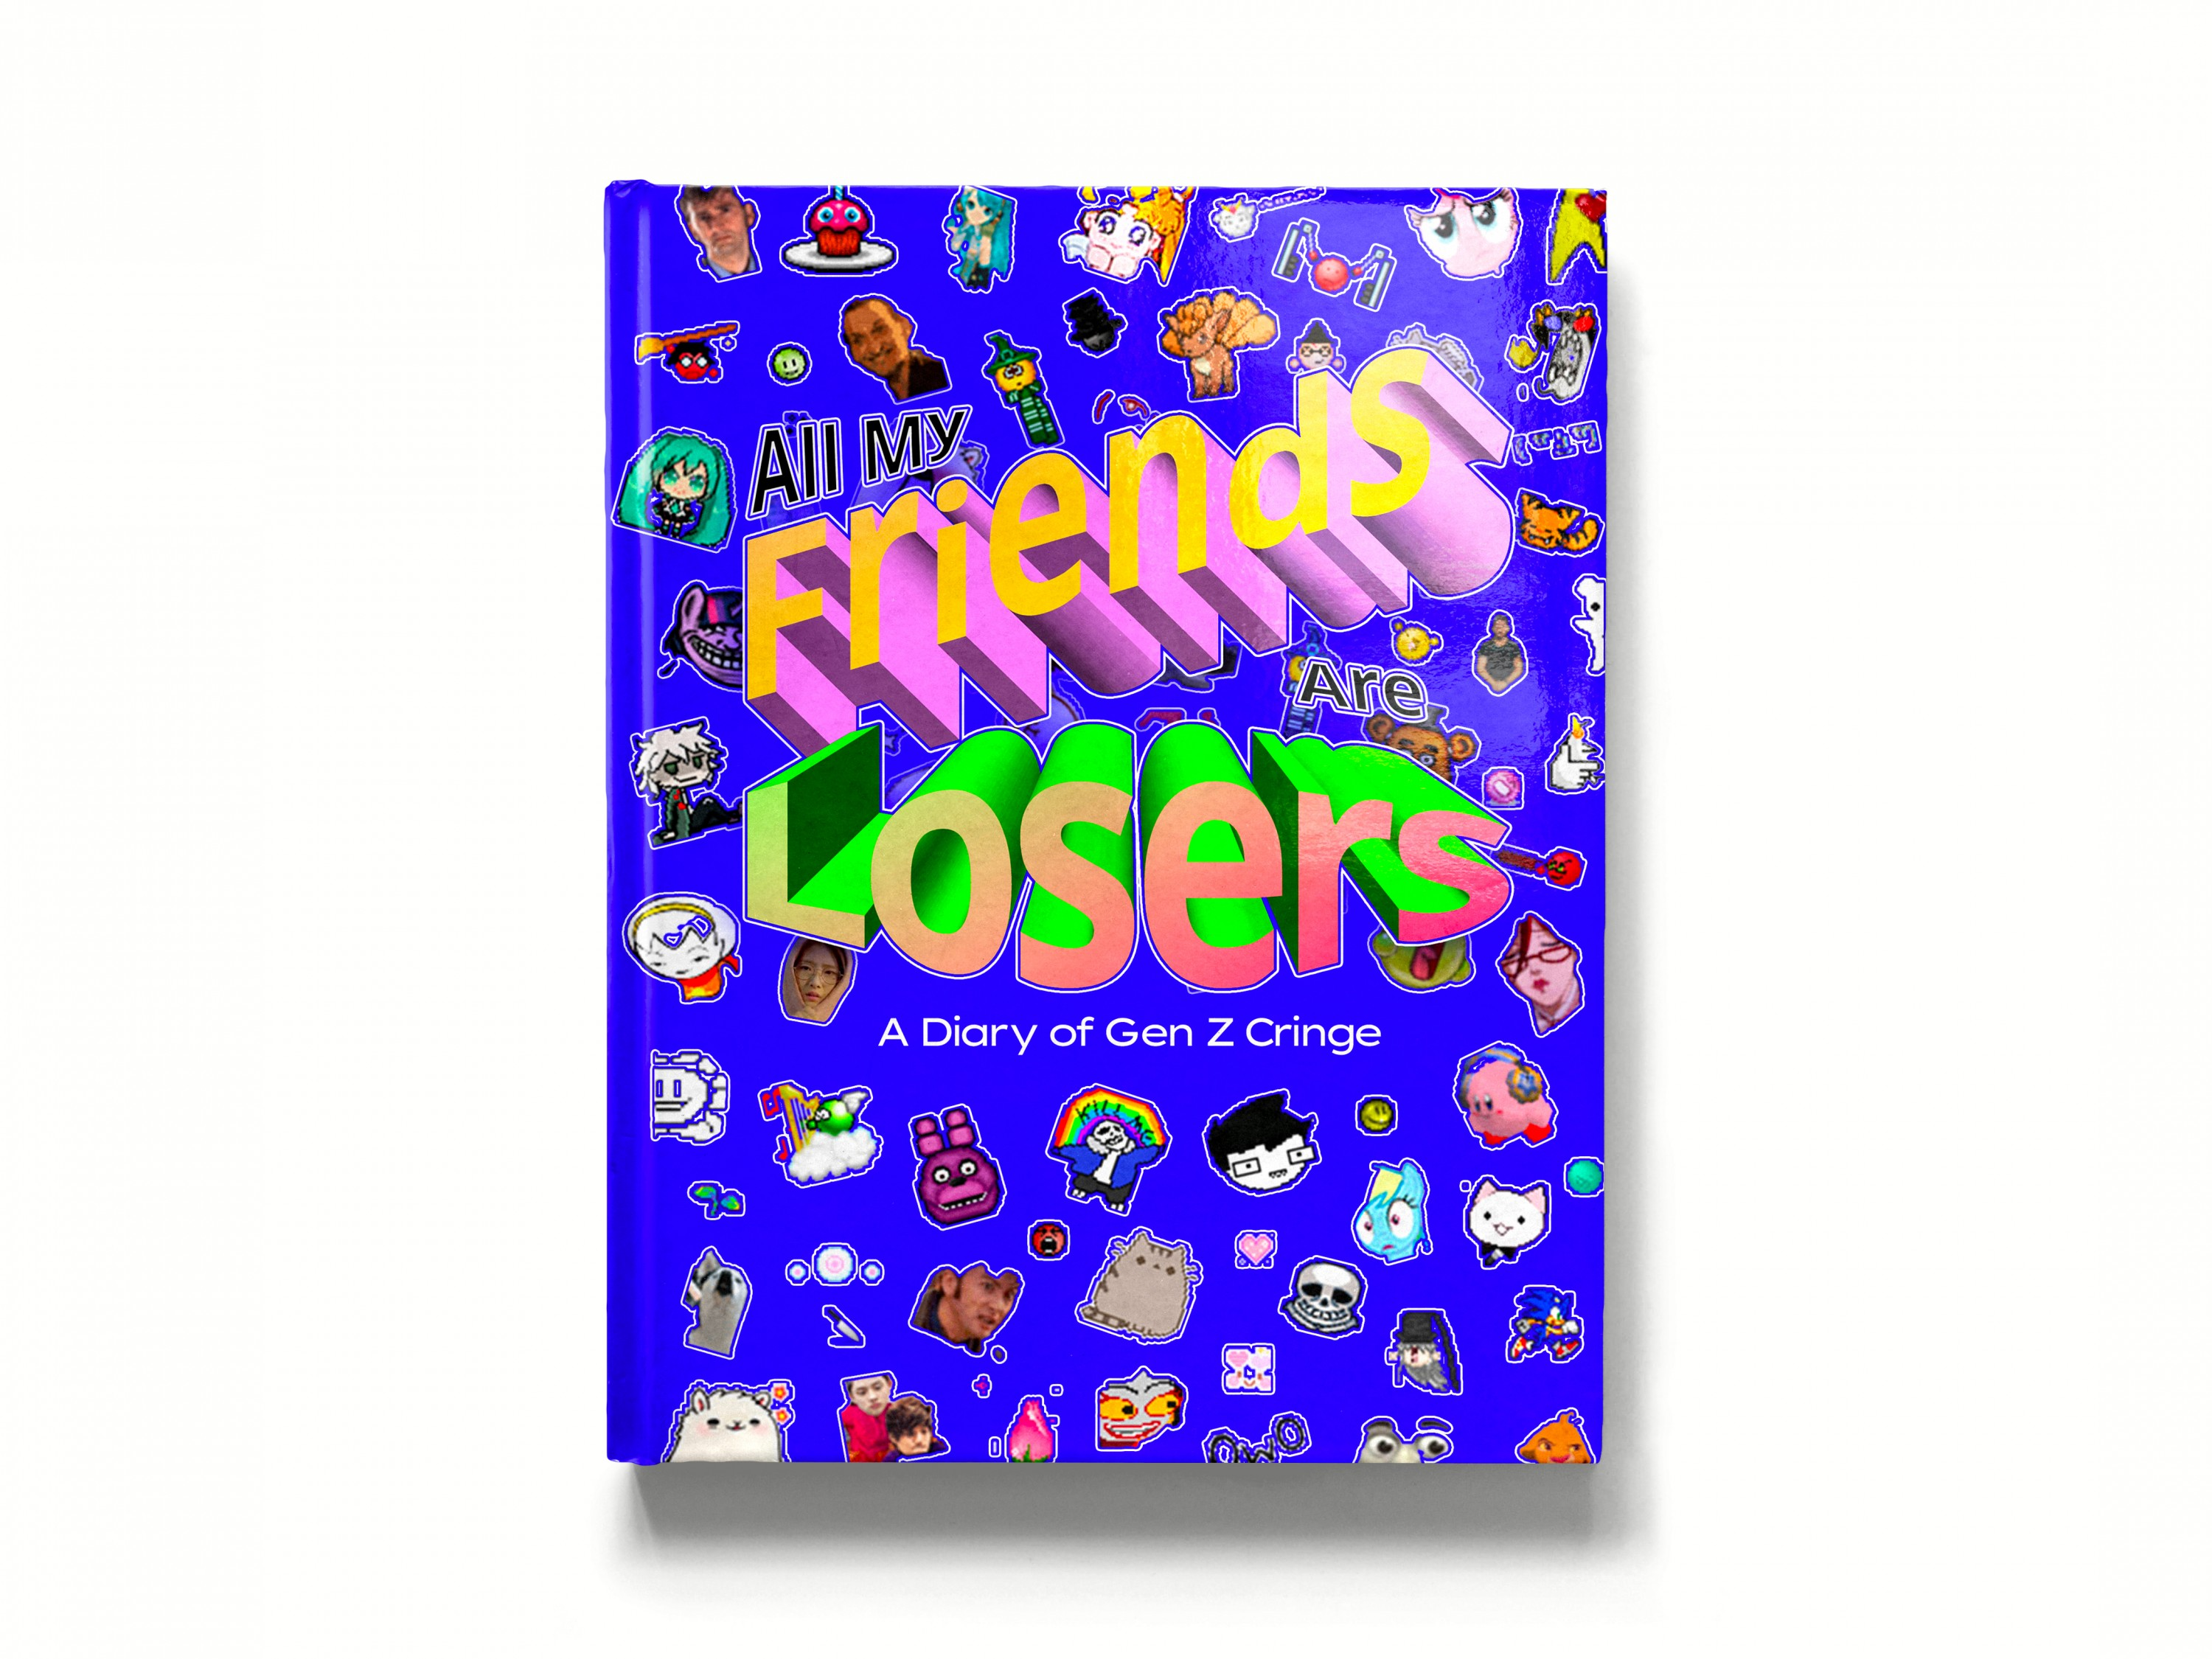 """Photo of an electric blue book cover covered in stickers and clip art from various fandoms of eras past. The title, """"All My Friends Are Losers"""" is written in word art. The subtitle, in a wide sans serif font, is """"A Diary of Gen Z Cringe.&qu"""